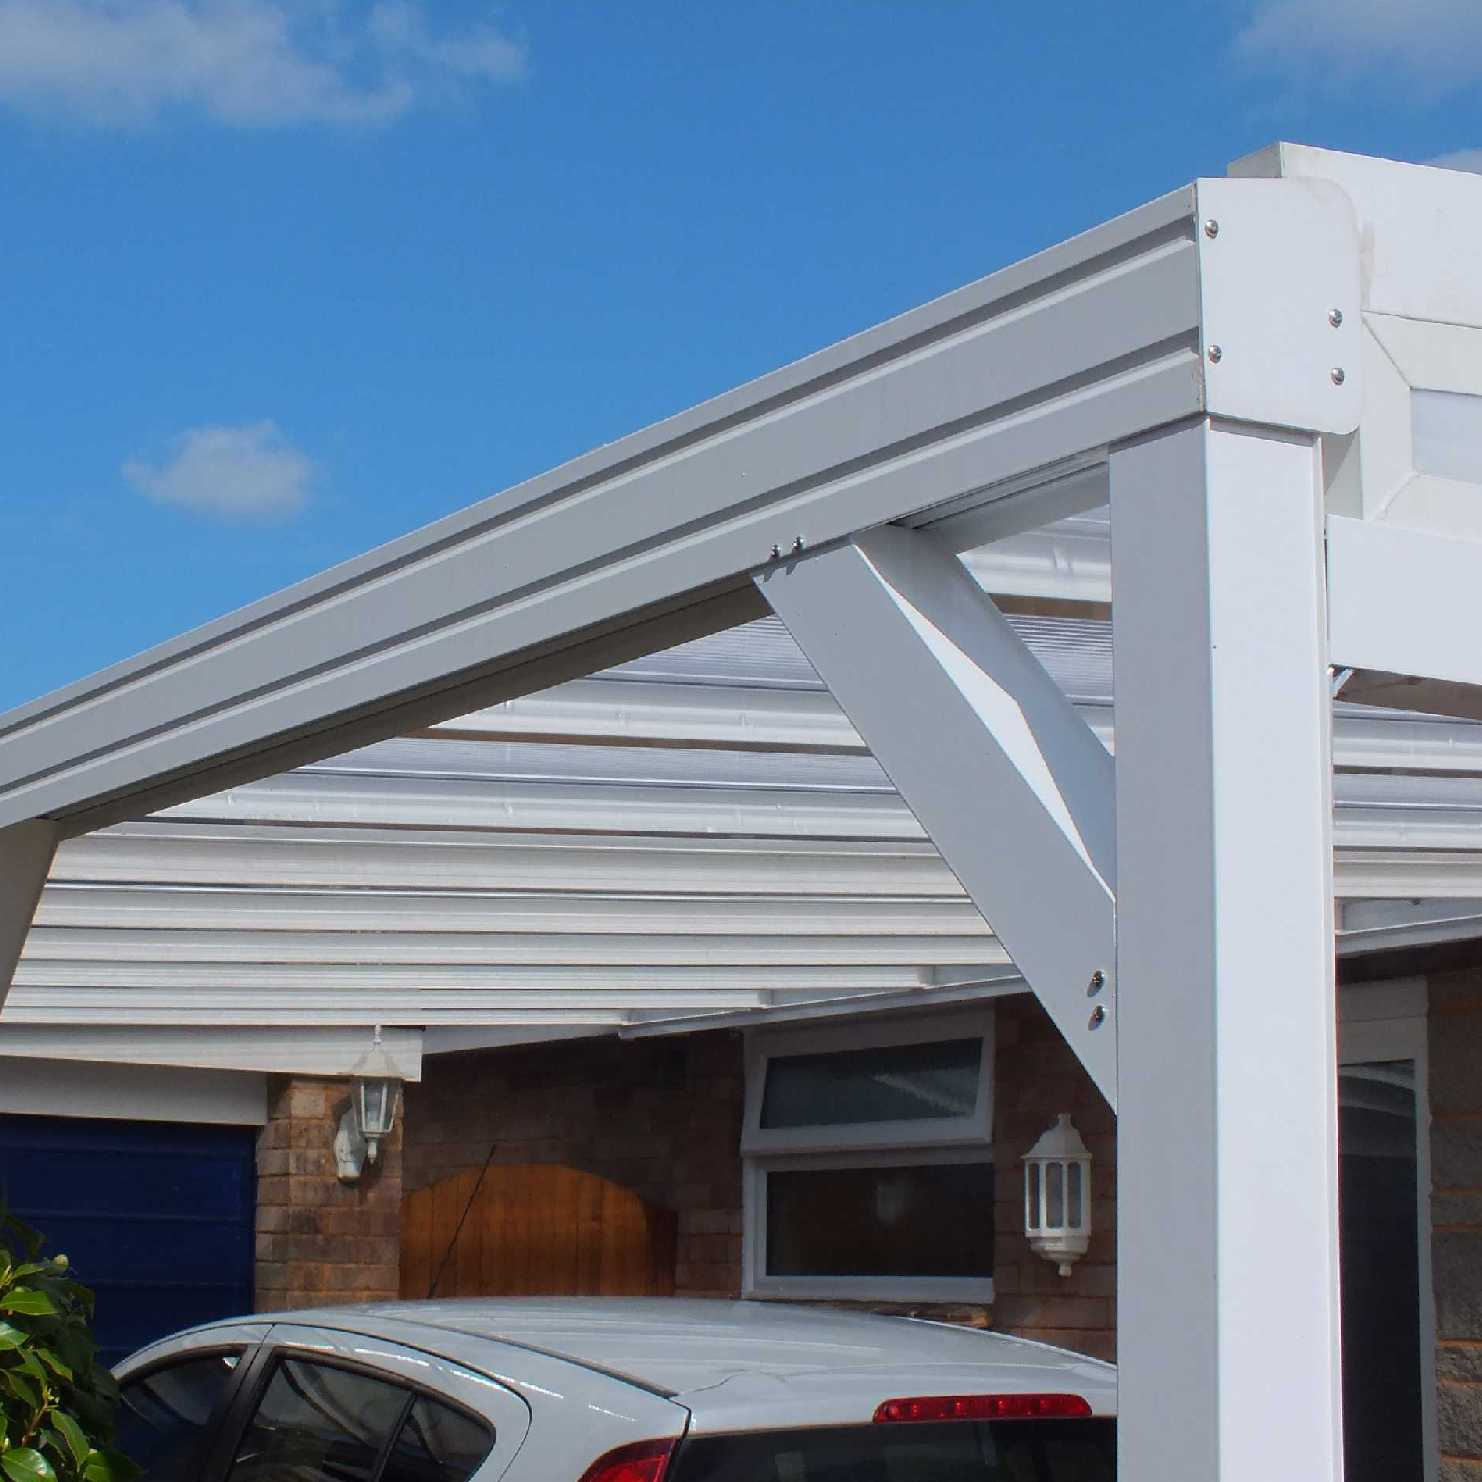 Great deals on Omega Smart WhiteLean-To Canopy with 16mm Polycarbonate Glazing - 8.4m (W) x 2.0m (P), (4) Supporting Posts